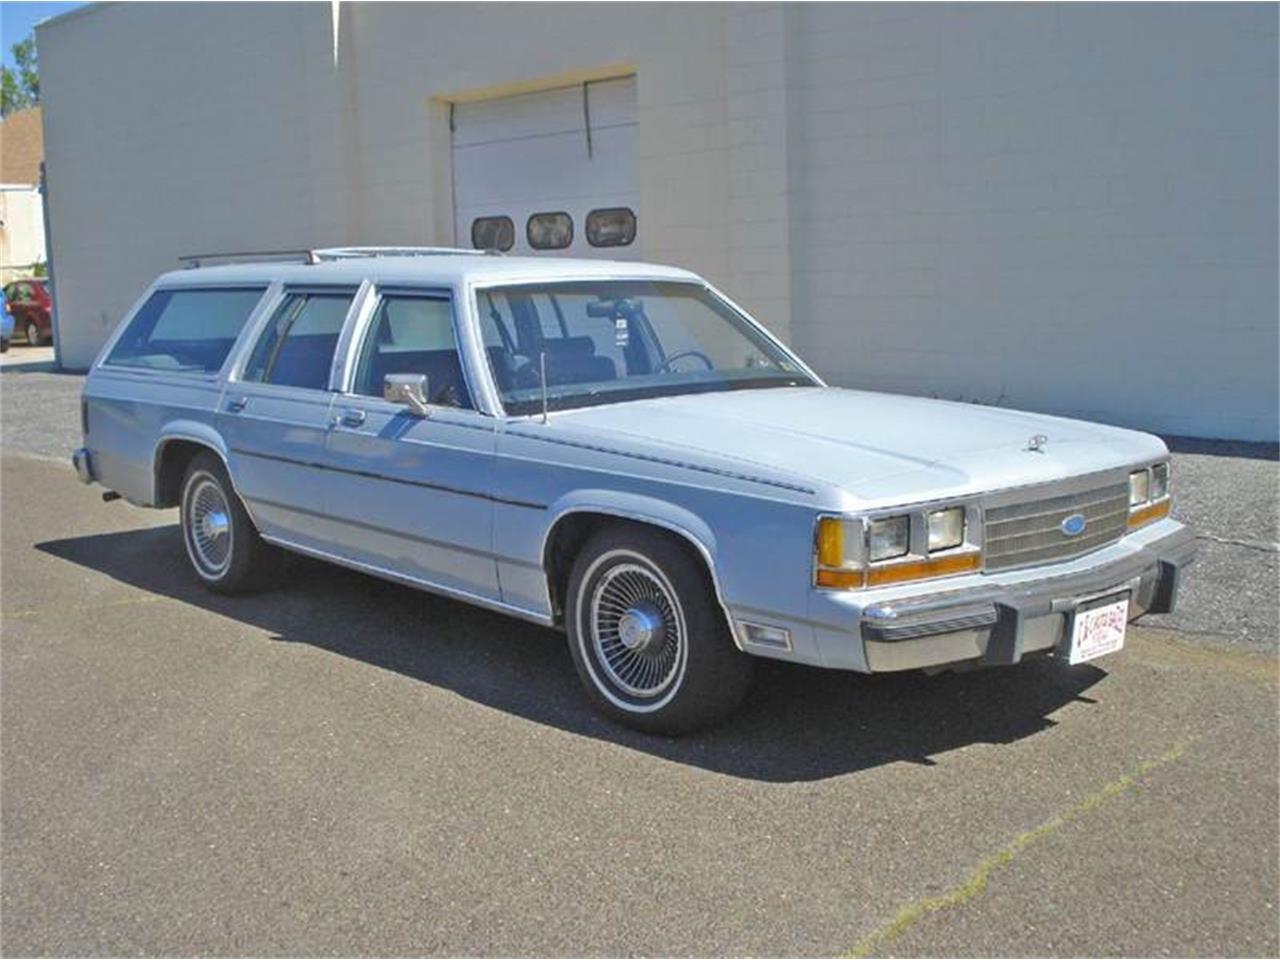 Cheap Sports Cars Under 5000 >> 1990 Ford Crown Victoria for Sale   ClassicCars.com   CC-919829